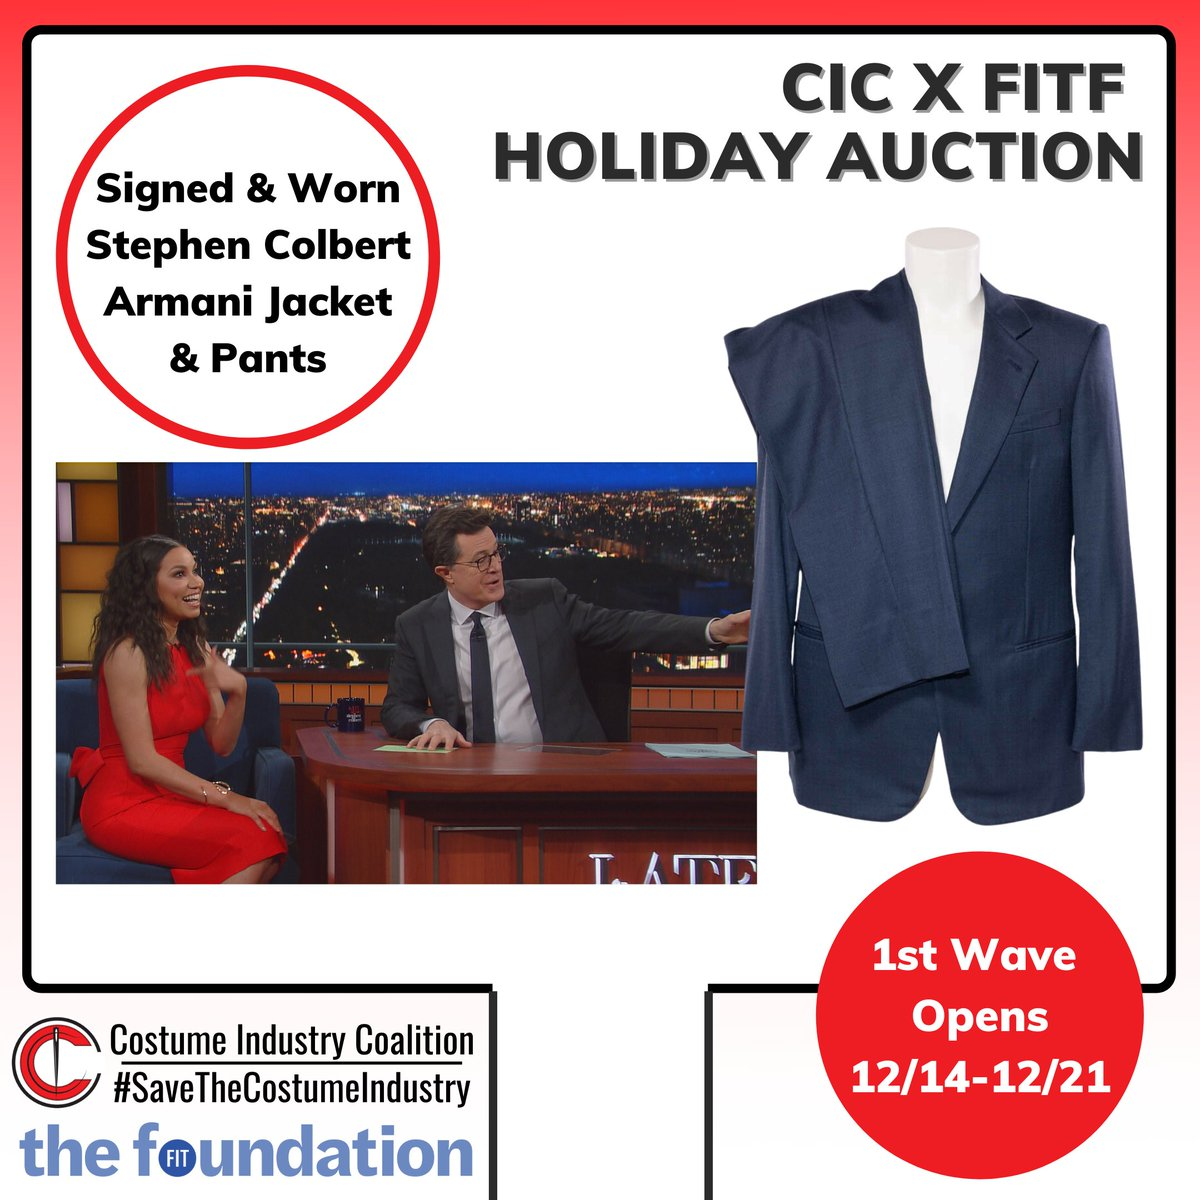 I'm happy to be auctioning off a suit I wore on The Late Show as part of the @fitfoundation @CosIndCo CIC x FITF Holiday Auction! It's a memento of our show and of a time when we still wore pants.  #SaveTheCostumeIndustry